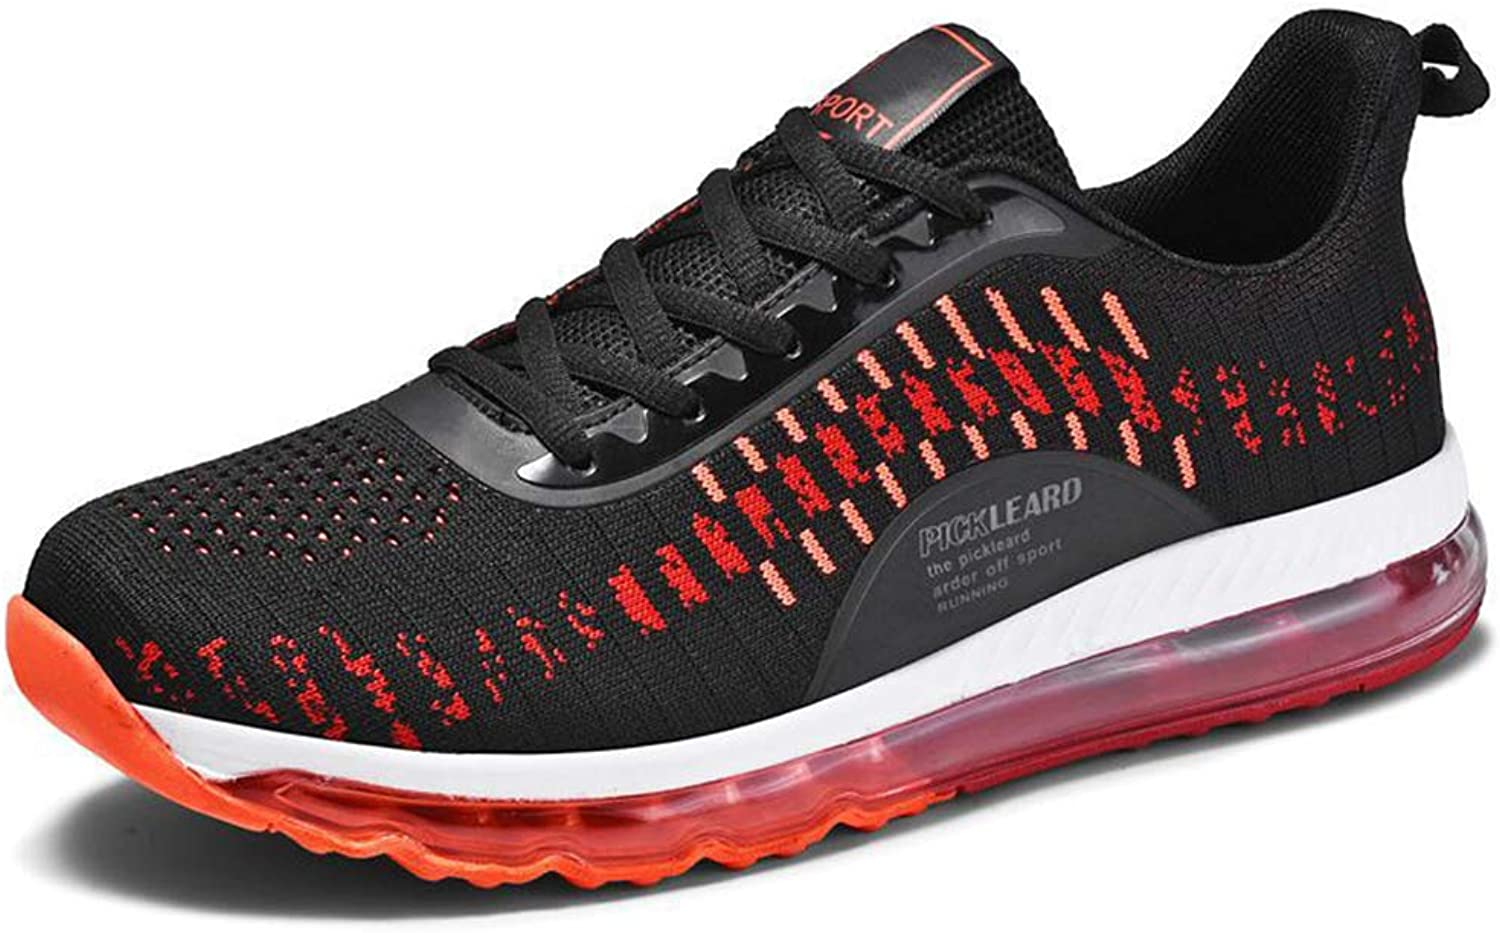 Y-H Men's Casual shoes,Spring Comfort Breathable Sneakers, Academy Student Running shoes Walking Gym shoes,blackred,46